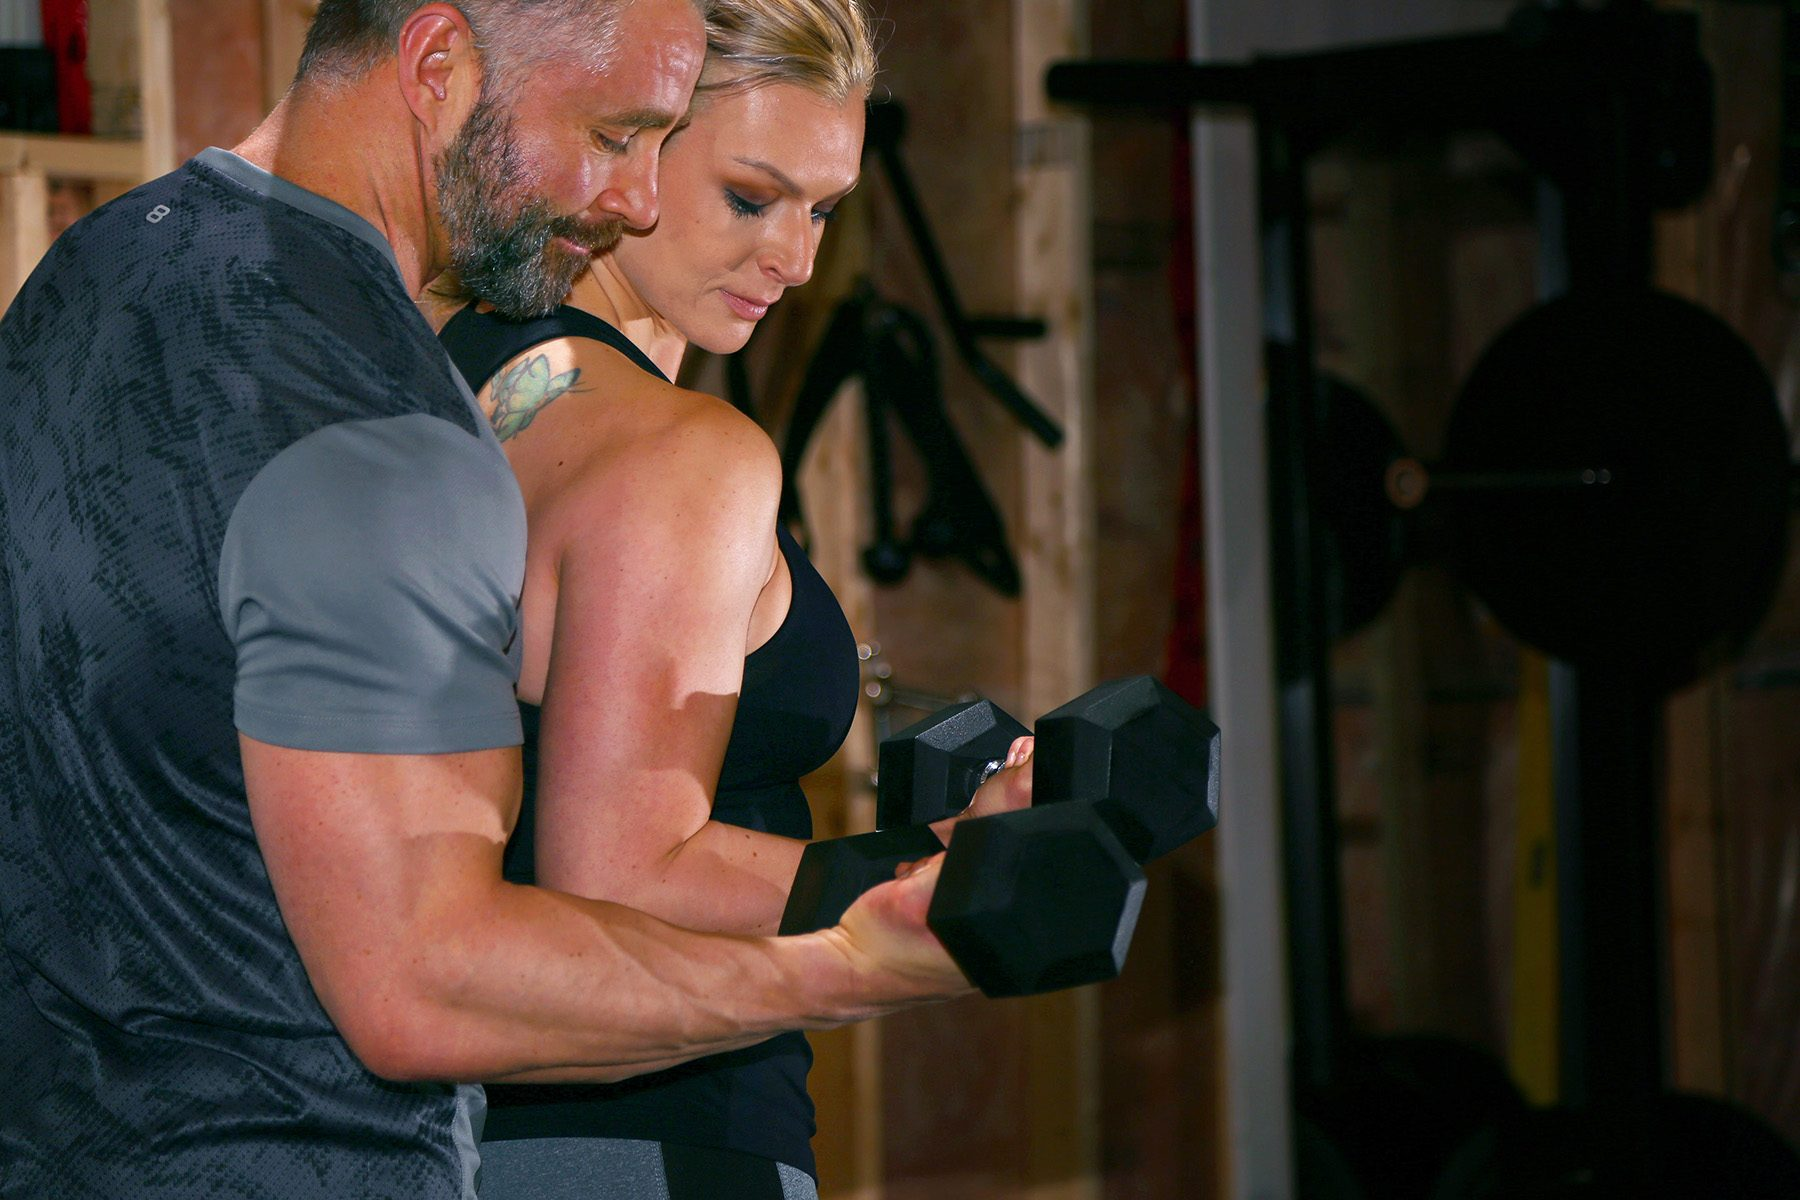 186-Fitness-couple-lifts-dumbbells-together@2x